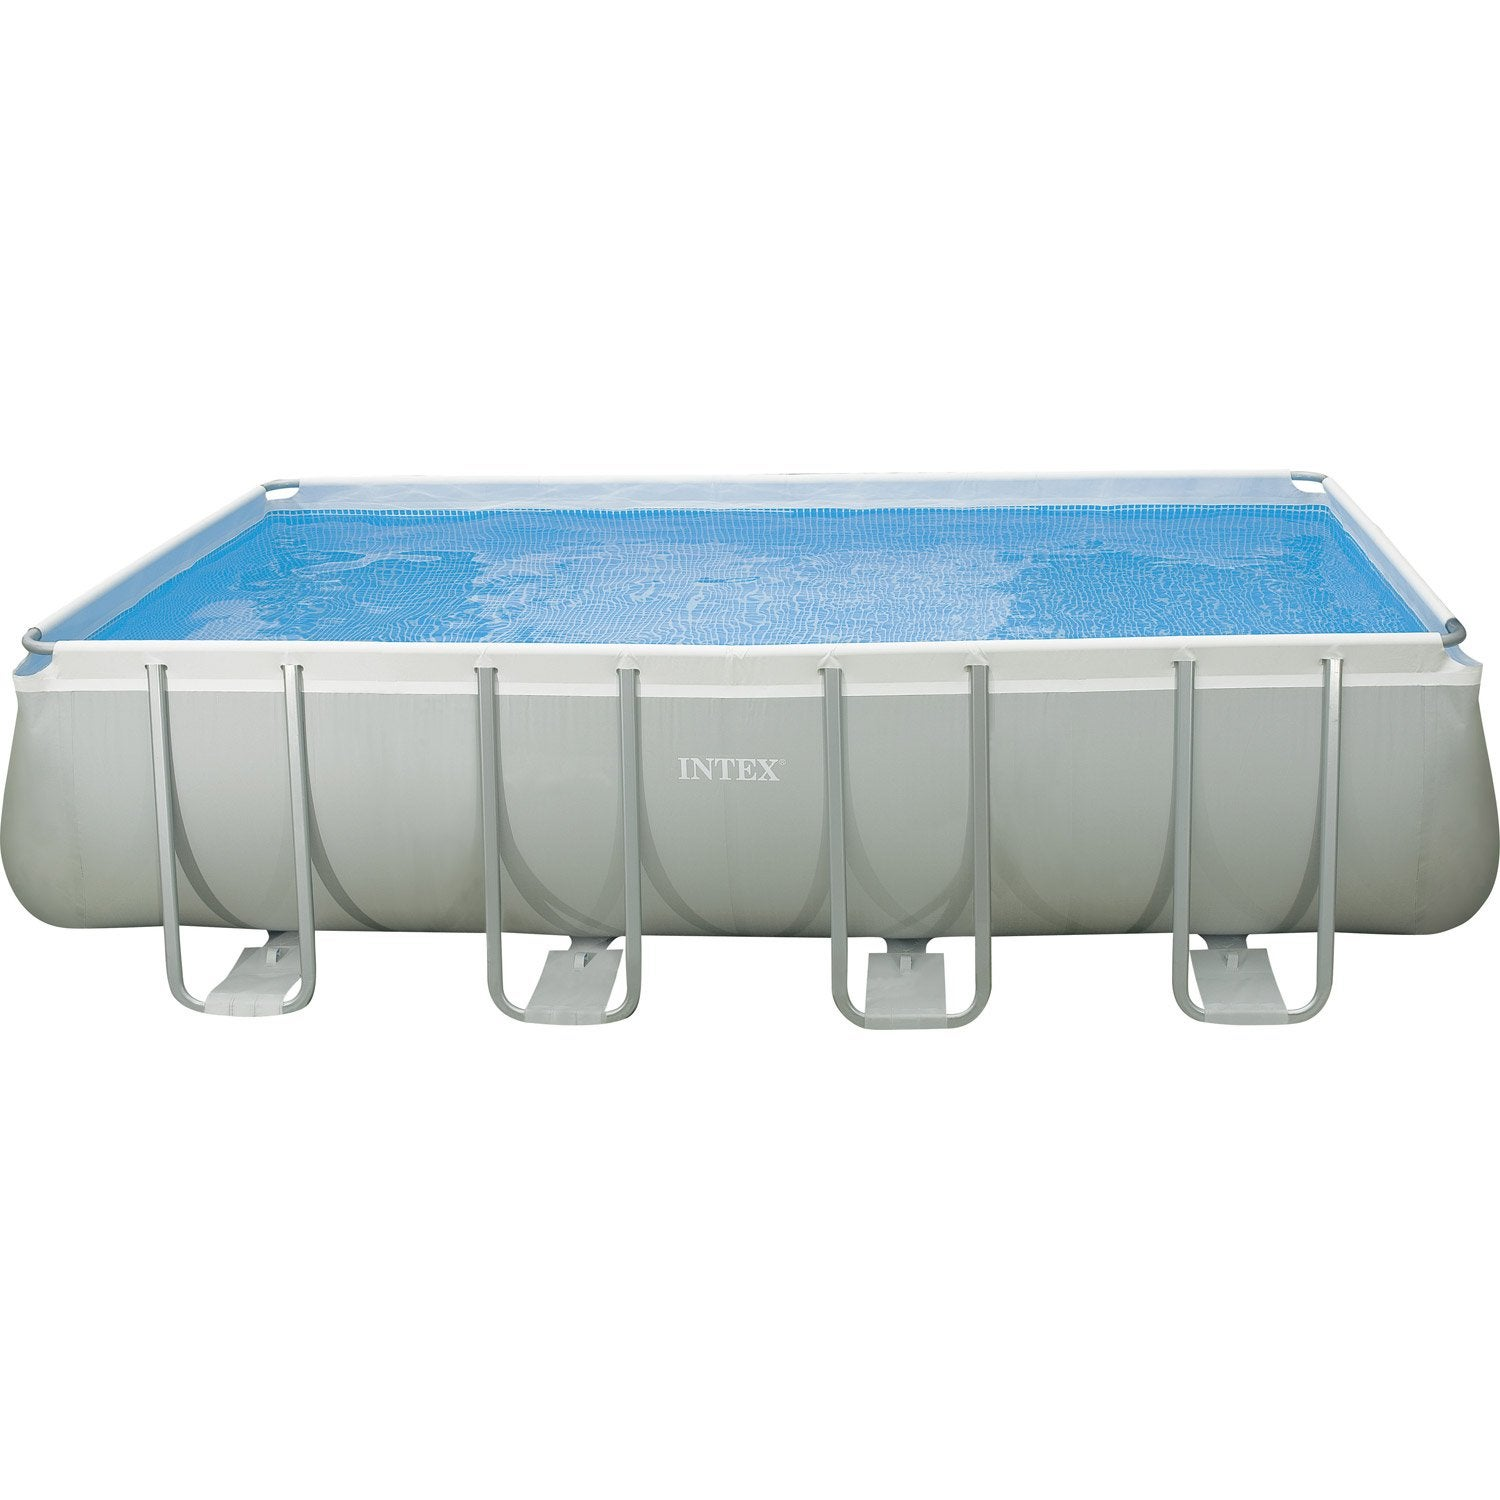 Piscine hors sol autoportante tubulaire intex l x l for Margelle piscine hors sol leroy merlin